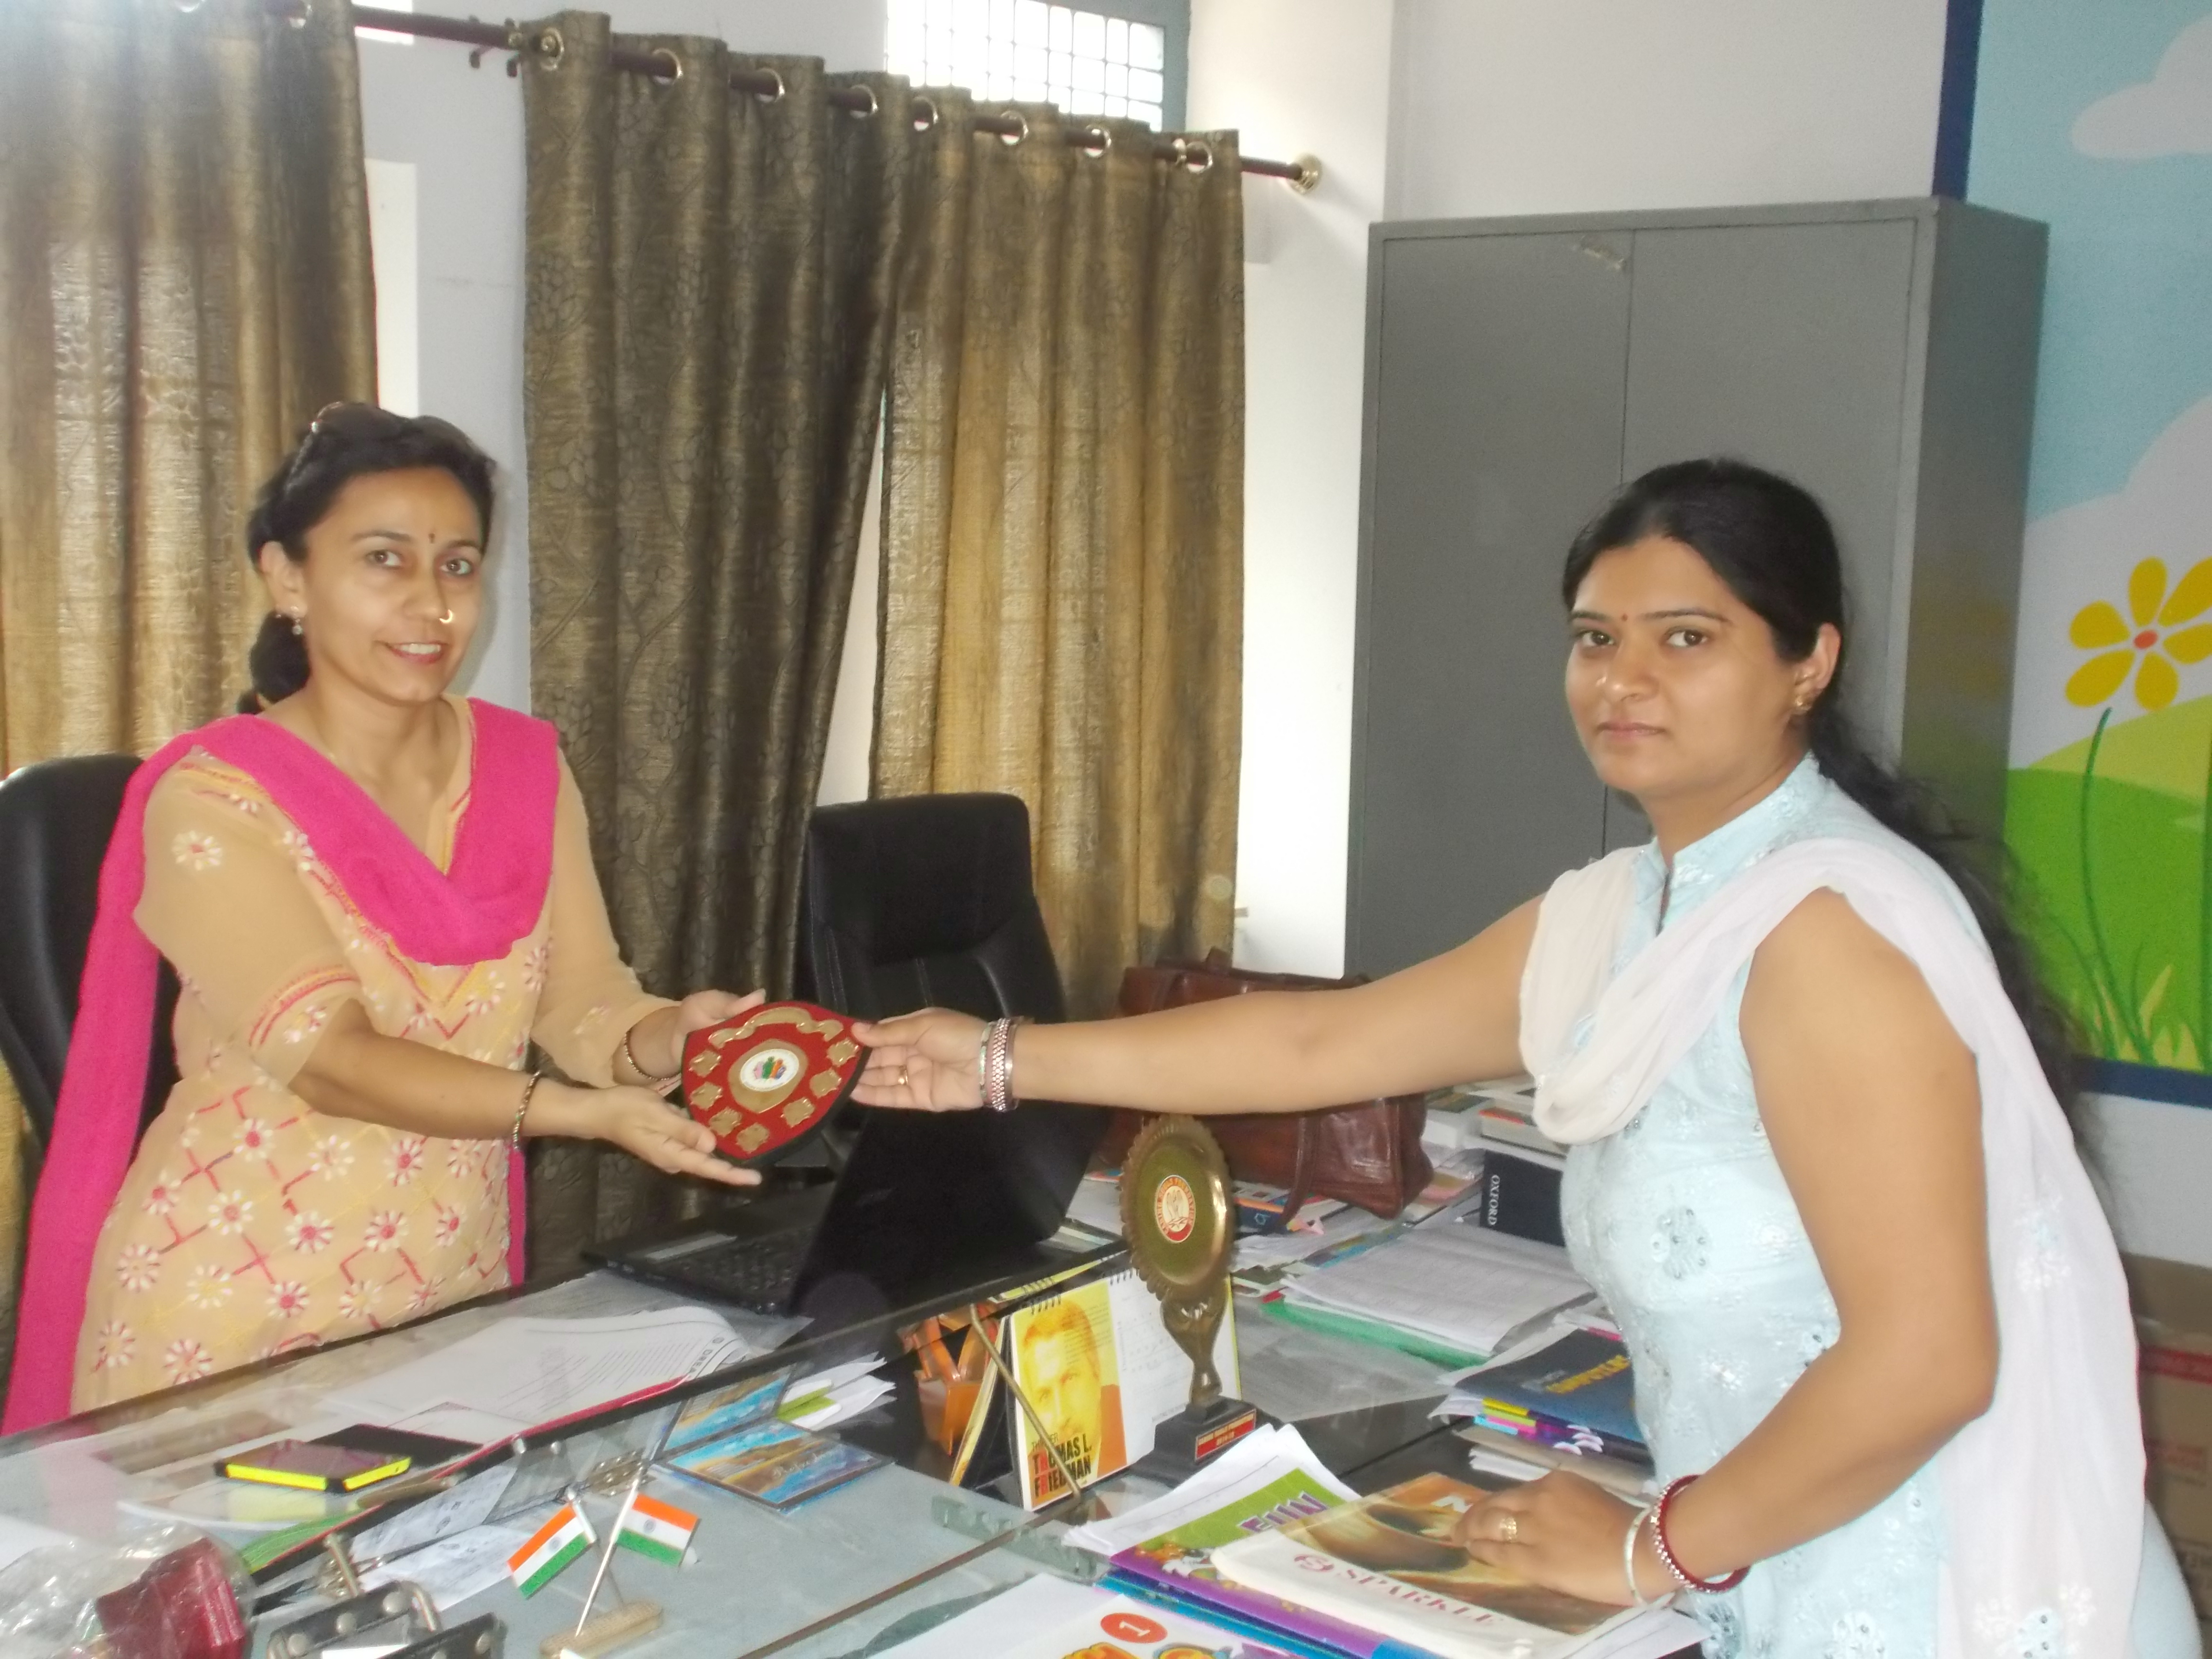 Shitika thanking the principal of school in Lucknow (u.p.) for her support in the awareness program held in her school